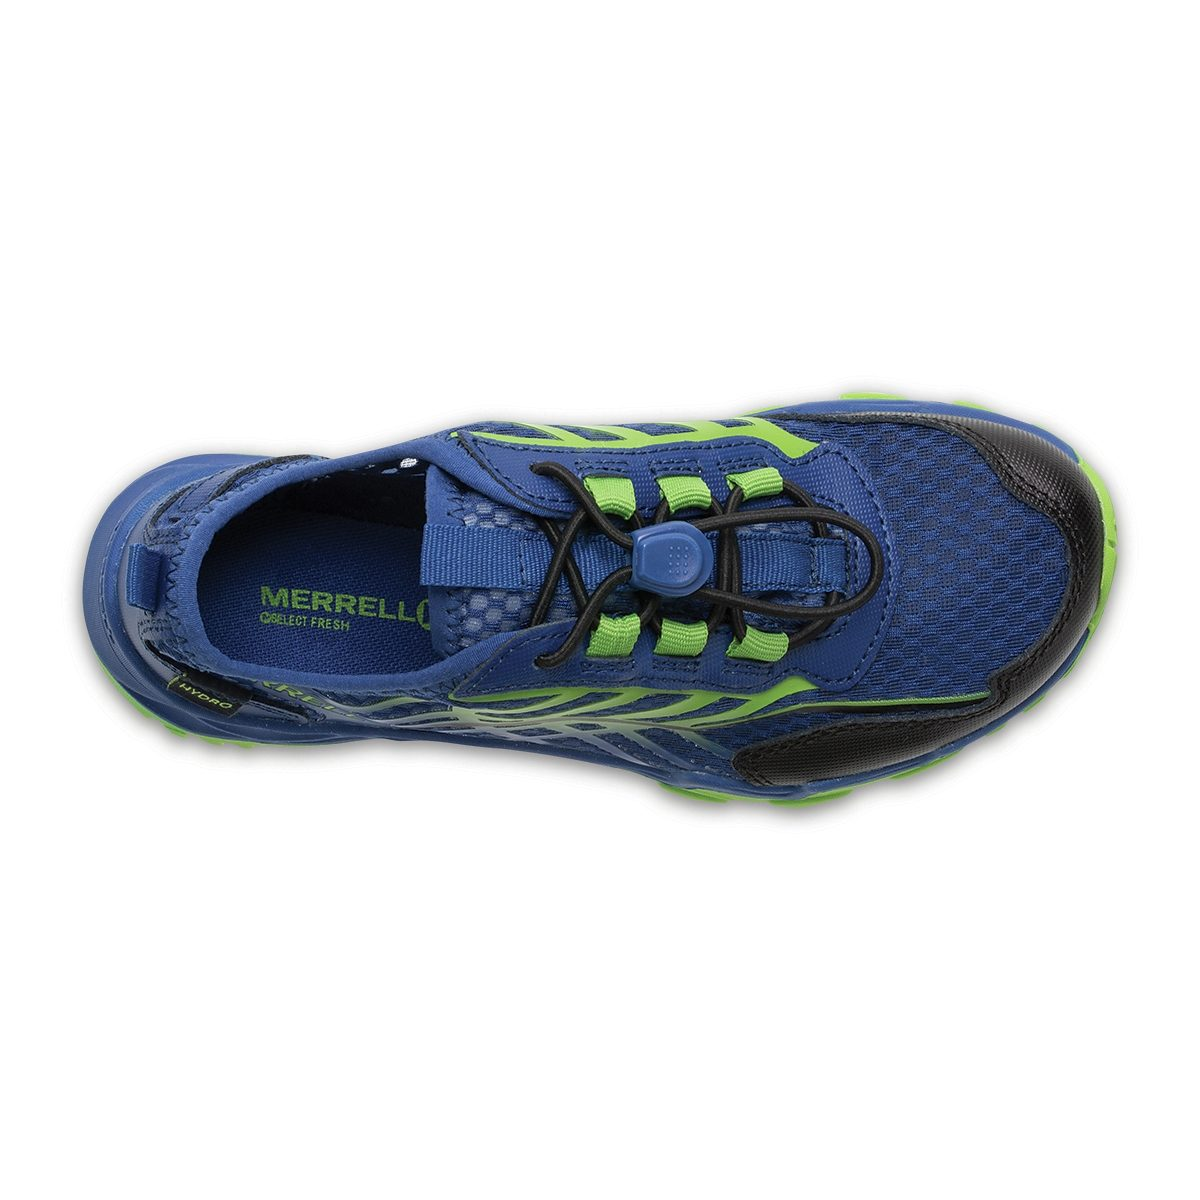 Merrell Halbschuhe »Hydro Run Shoes Kids«